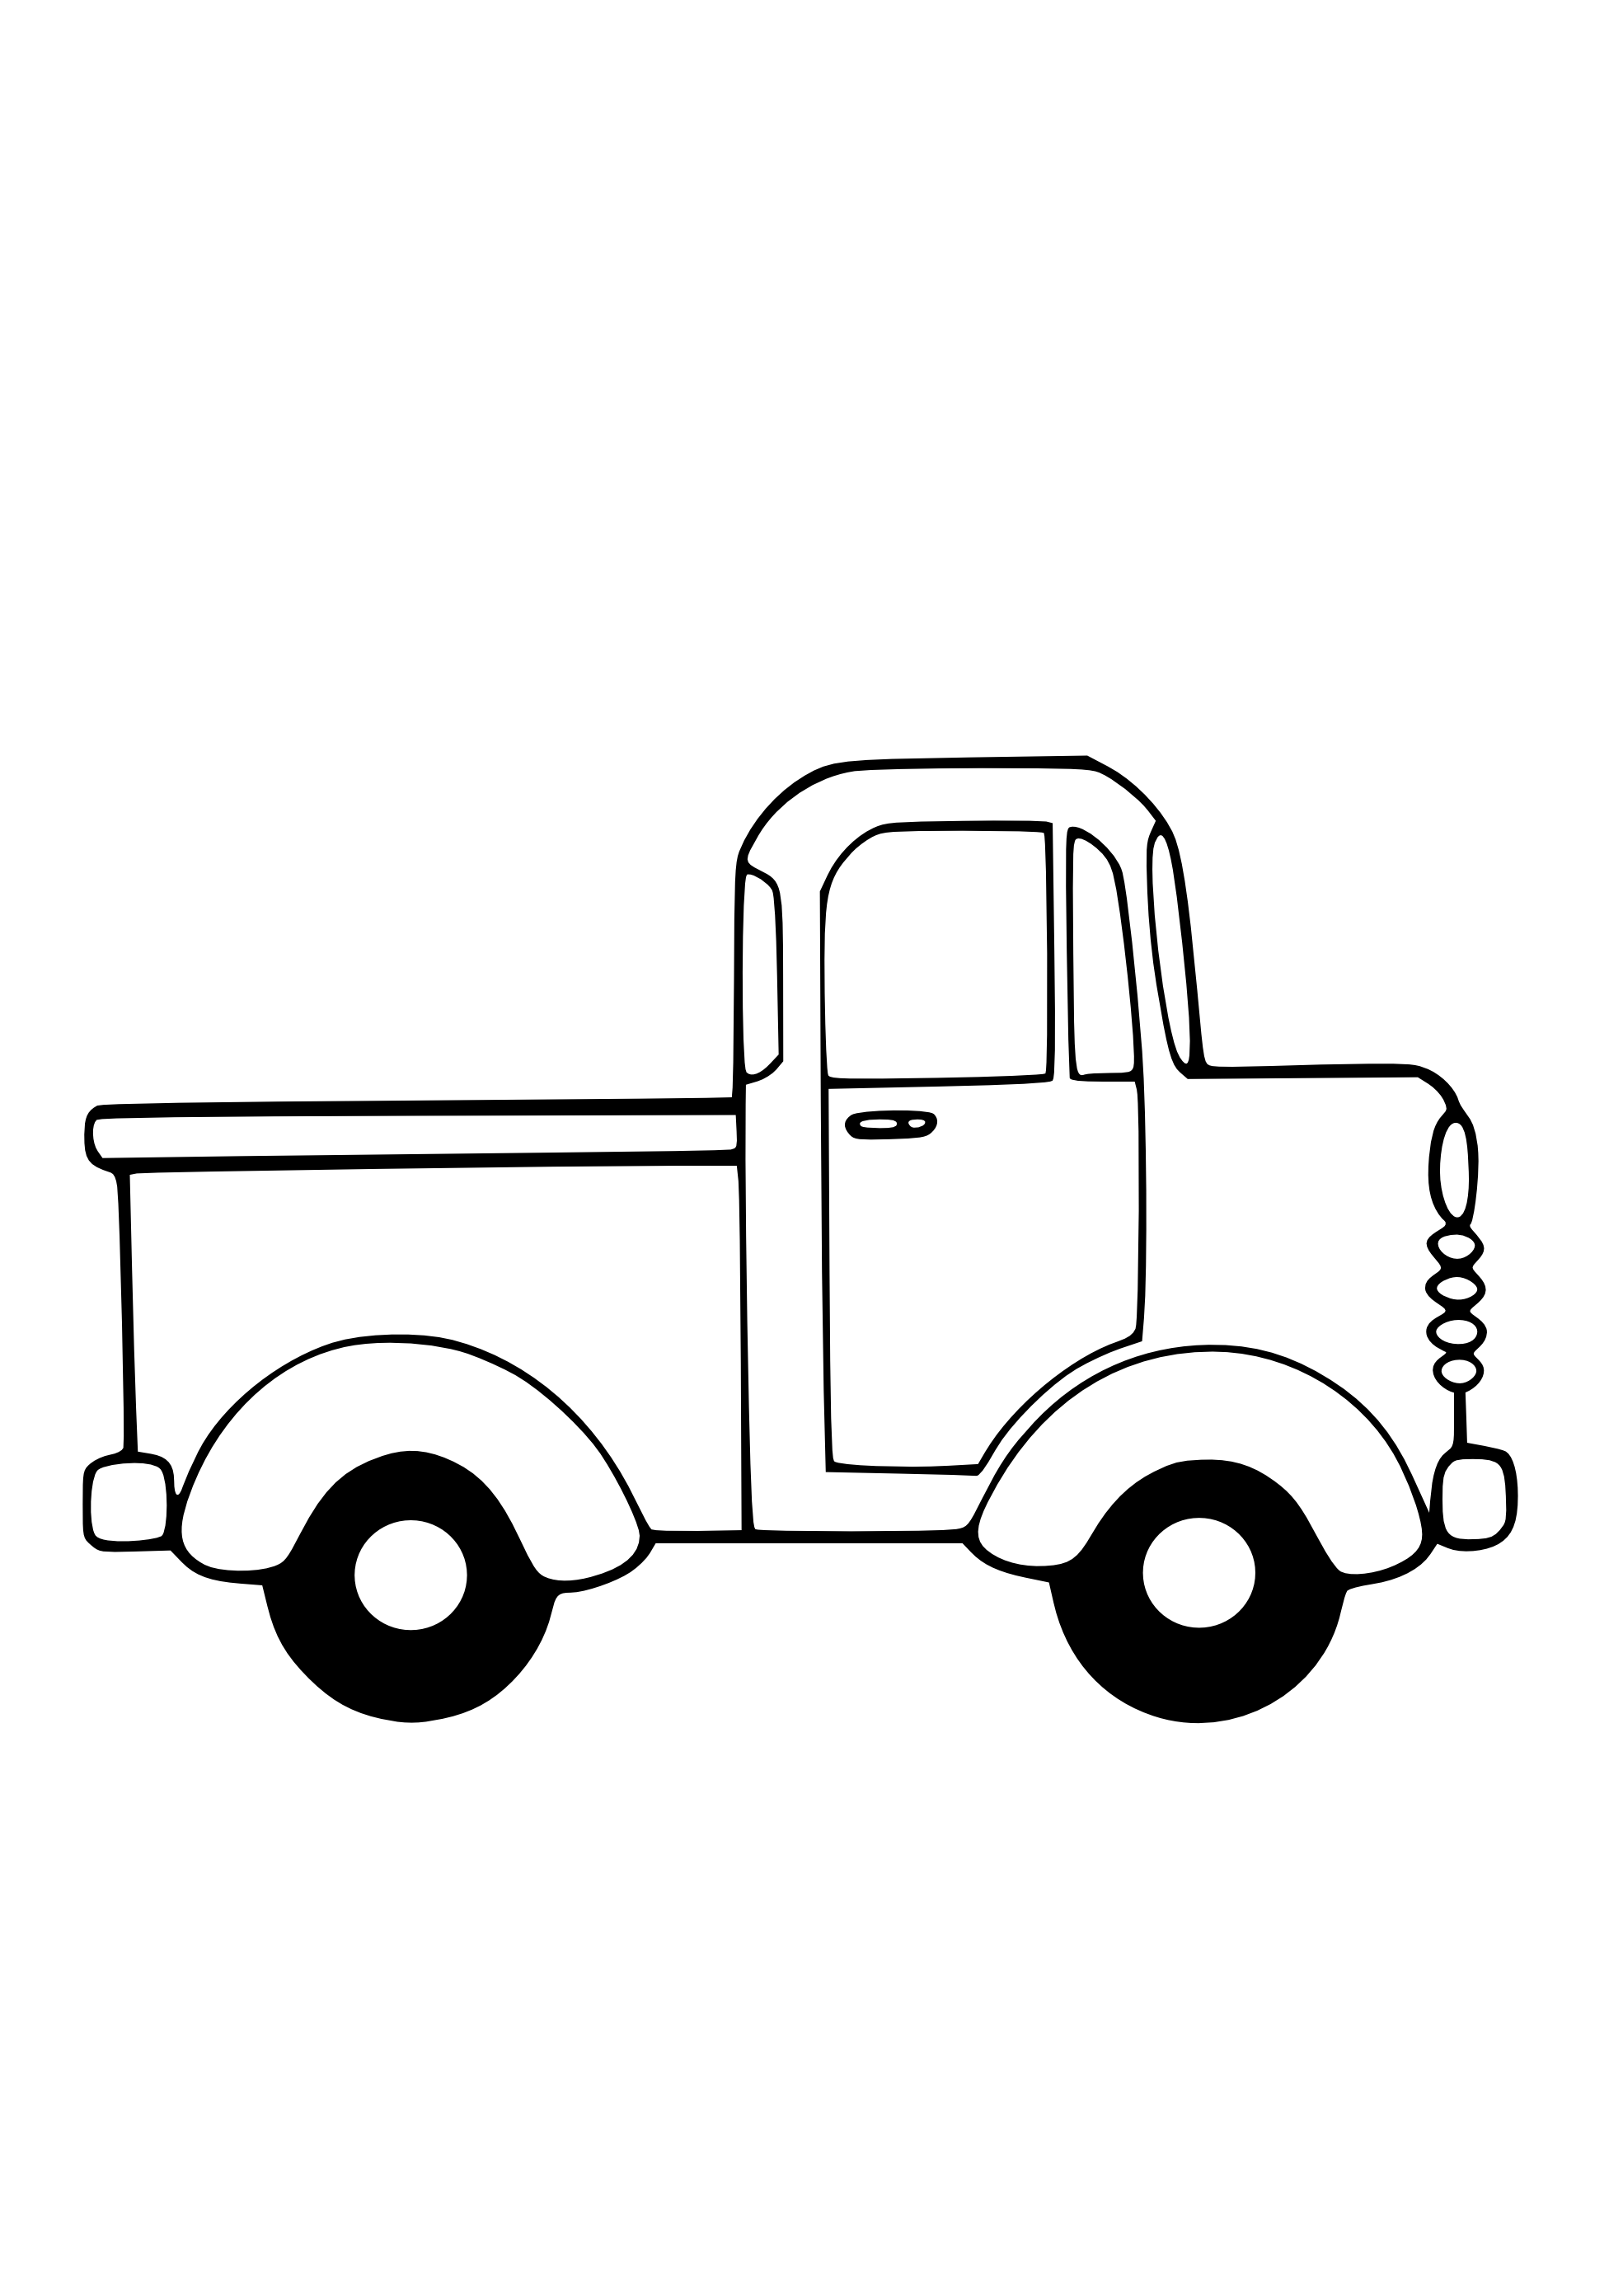 Truck svg #7, Download drawings